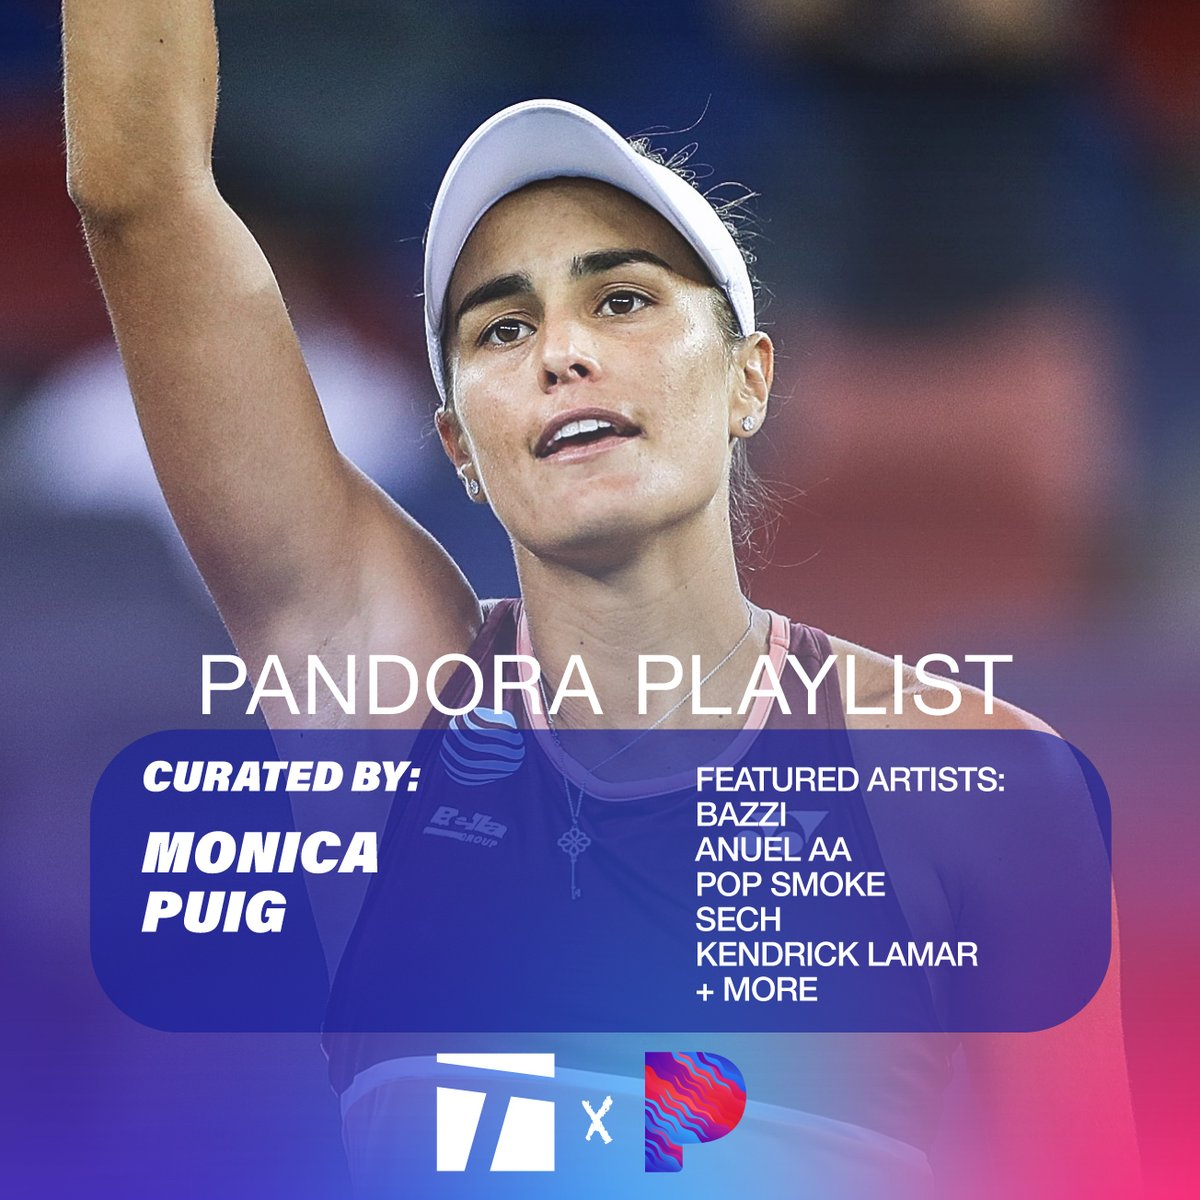 In need of some uplifting tunes? 🎶  @MonicaAce93's curated @PandoraMusic playlist has got us moving, with the help of @DaBabyDaBaby, @DojaCat, @KendrickLamar, and more.💃🏽  Listen now→ https://t.co/fkR6hOlPuE #PandoraMusic https://t.co/hUdKvDjSS6